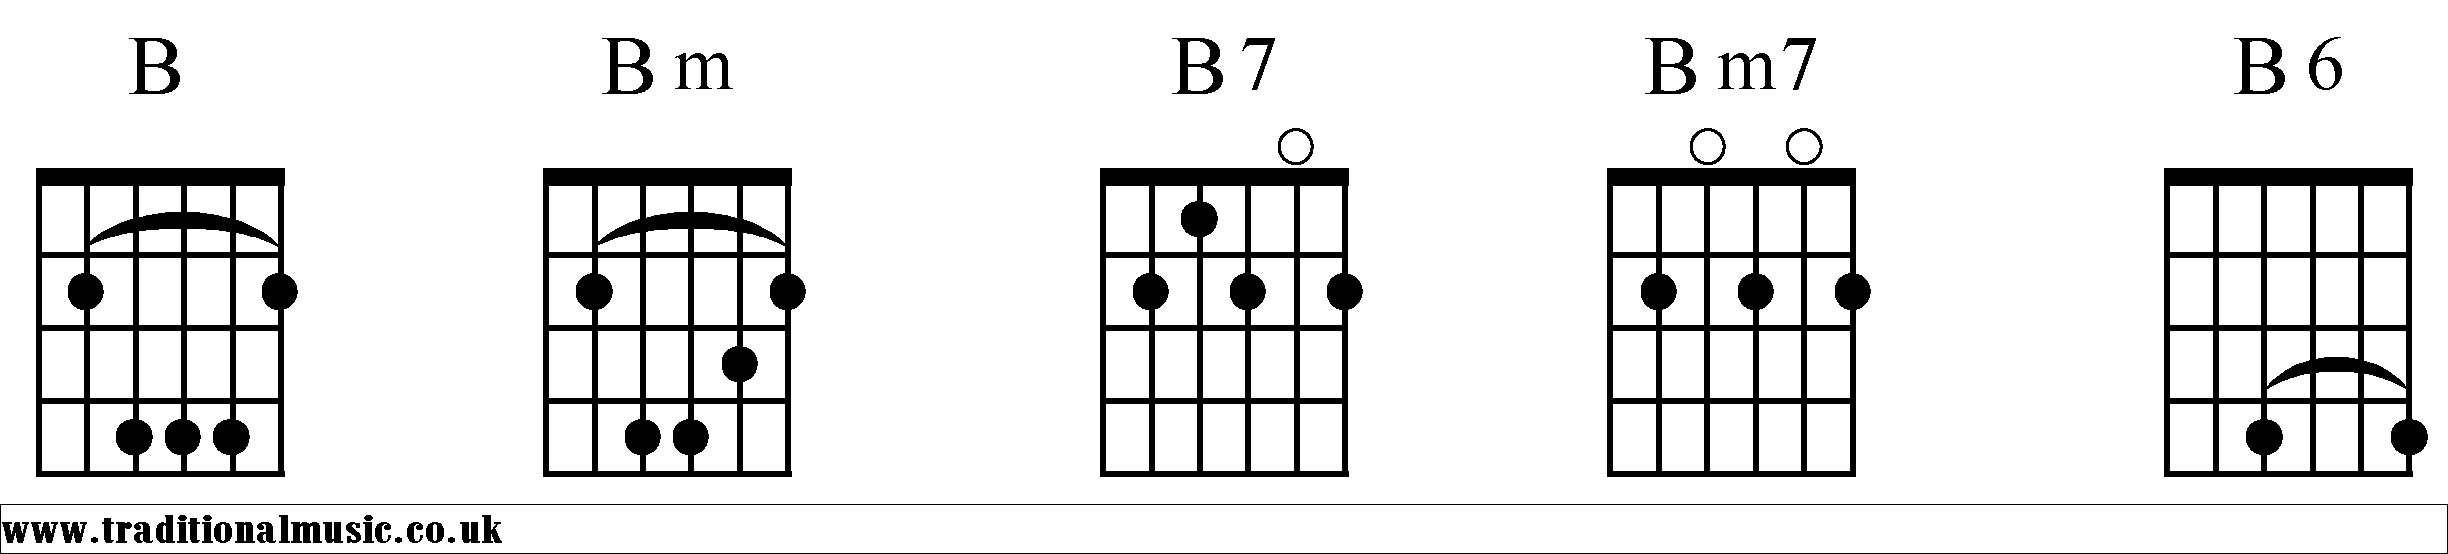 Bm Chord Guitar Gallery Basic Guitar Chords Finger Placement